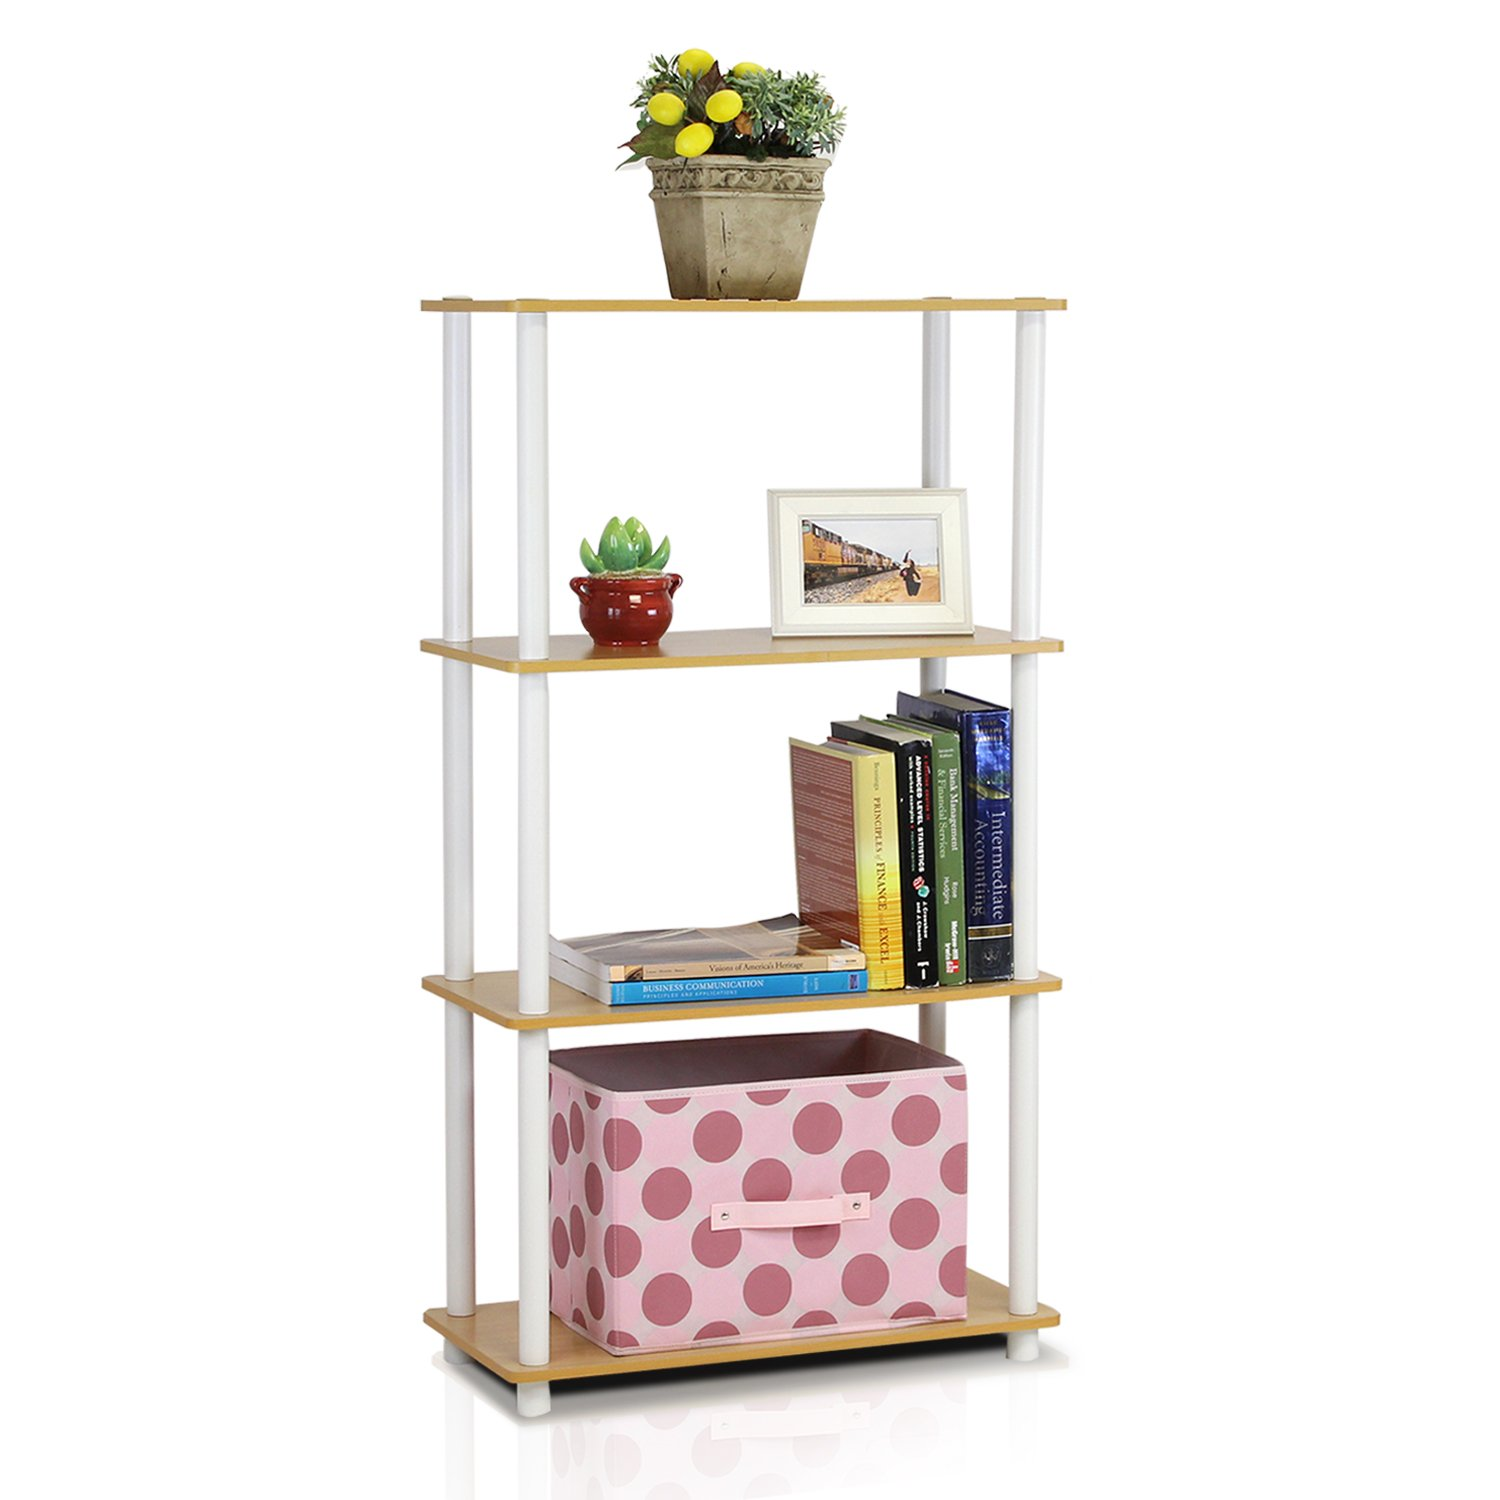 Furinno (99557BE/WH) Turn-N-Tube 4-Tier Multipurpose Shelf Display Rack - Beech/White by Furinno (Image #3)